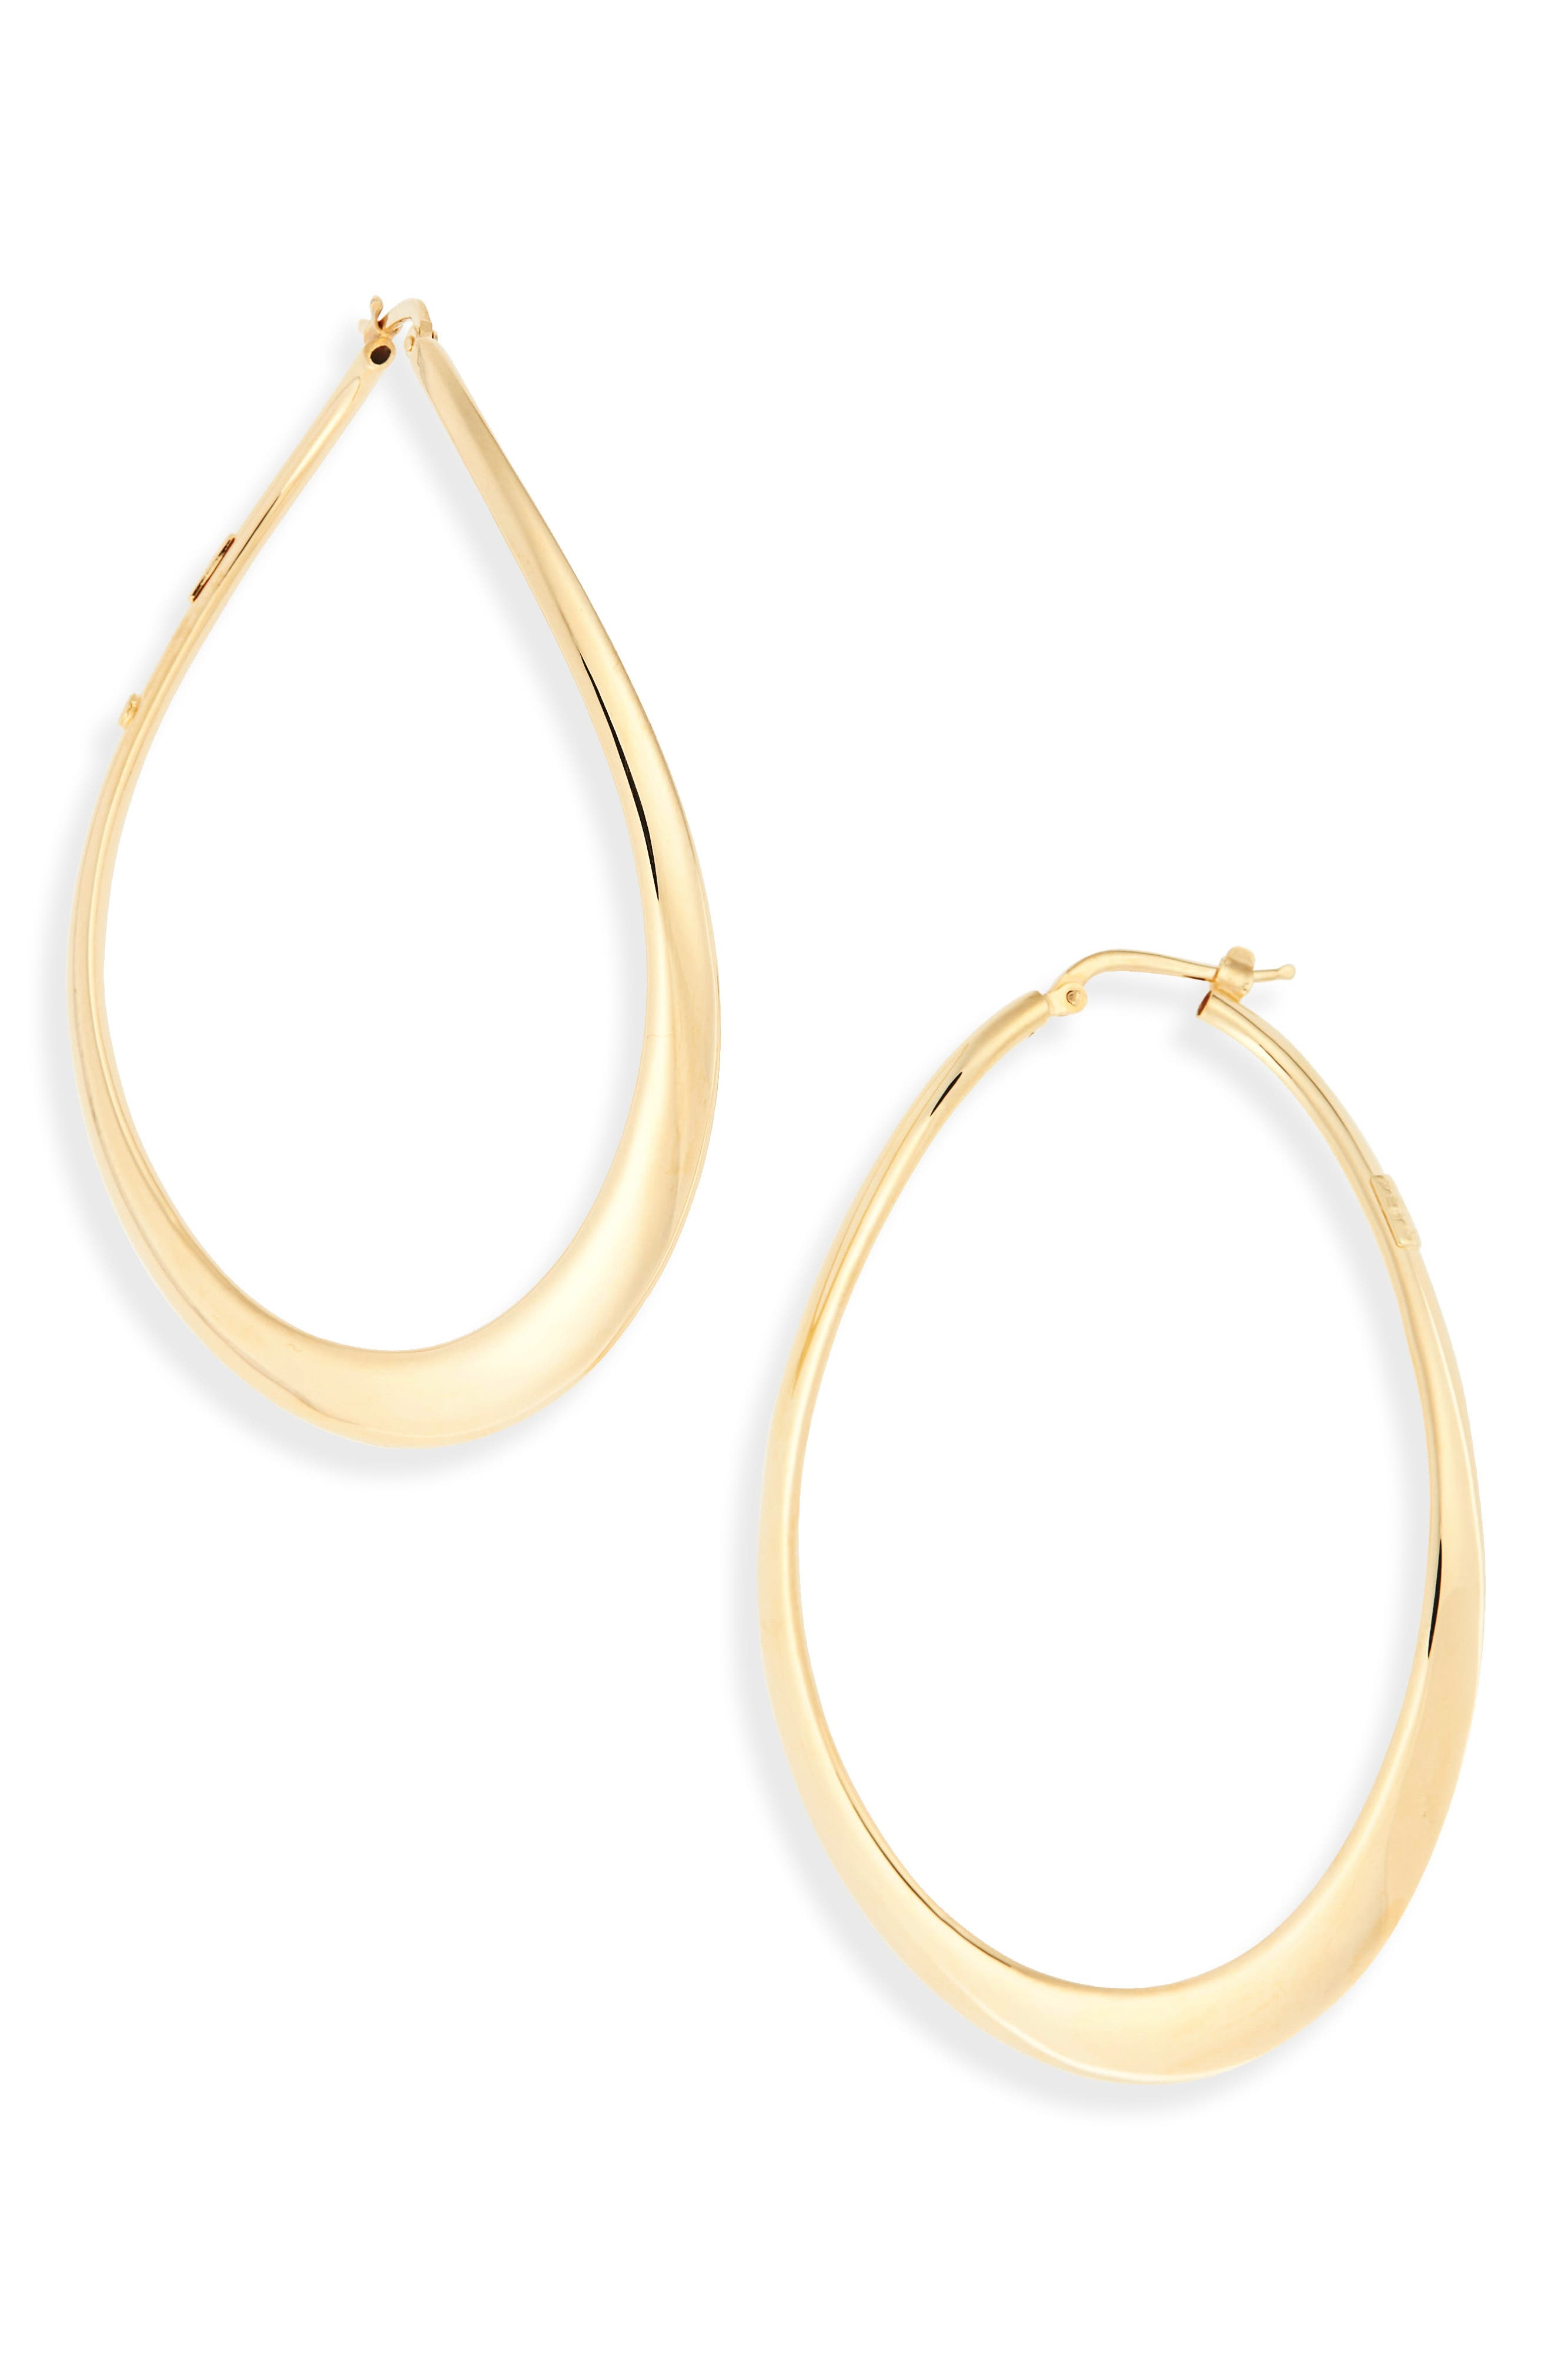 Classic Oro 18k Gold Hoop Earrings,                         Main,                         color, 710